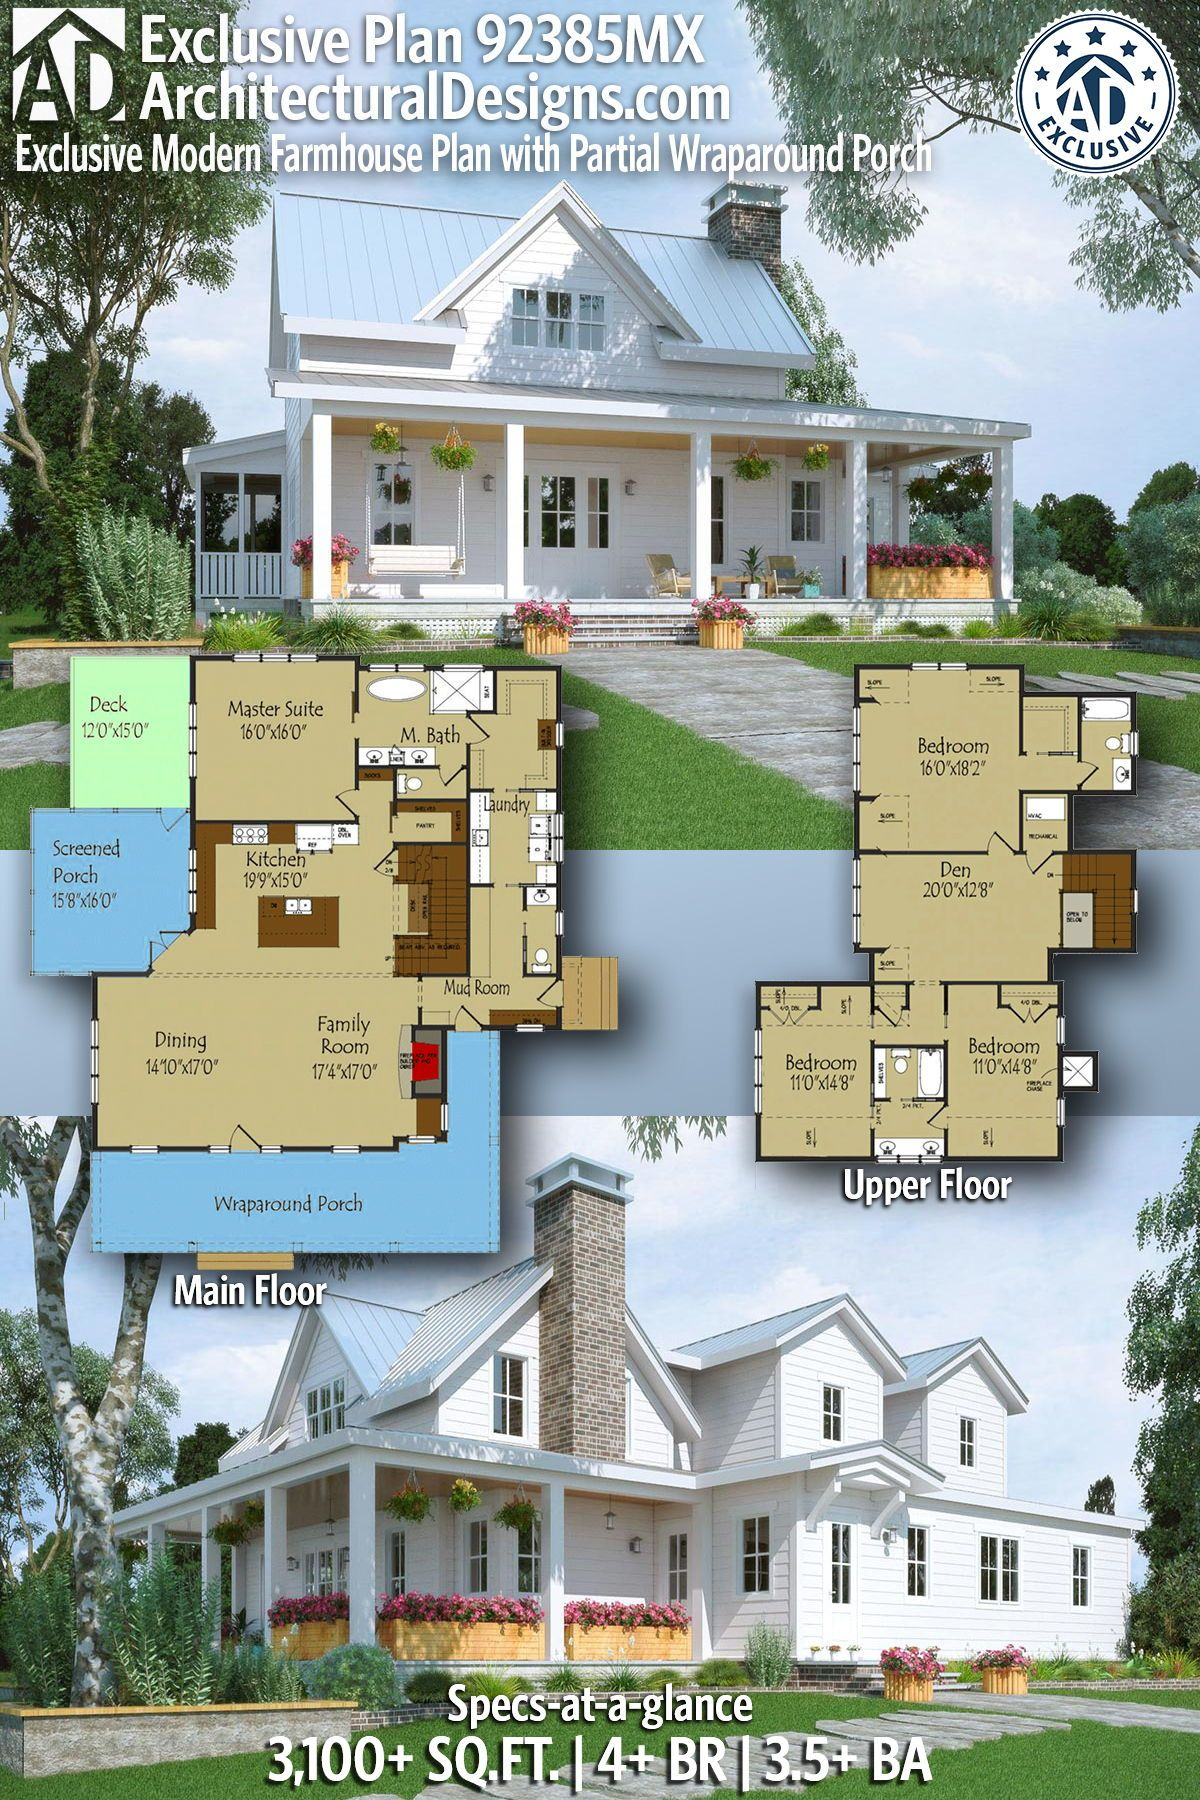 Plan 92385mx Exclusive Modern Farmhouse Plan With Partial